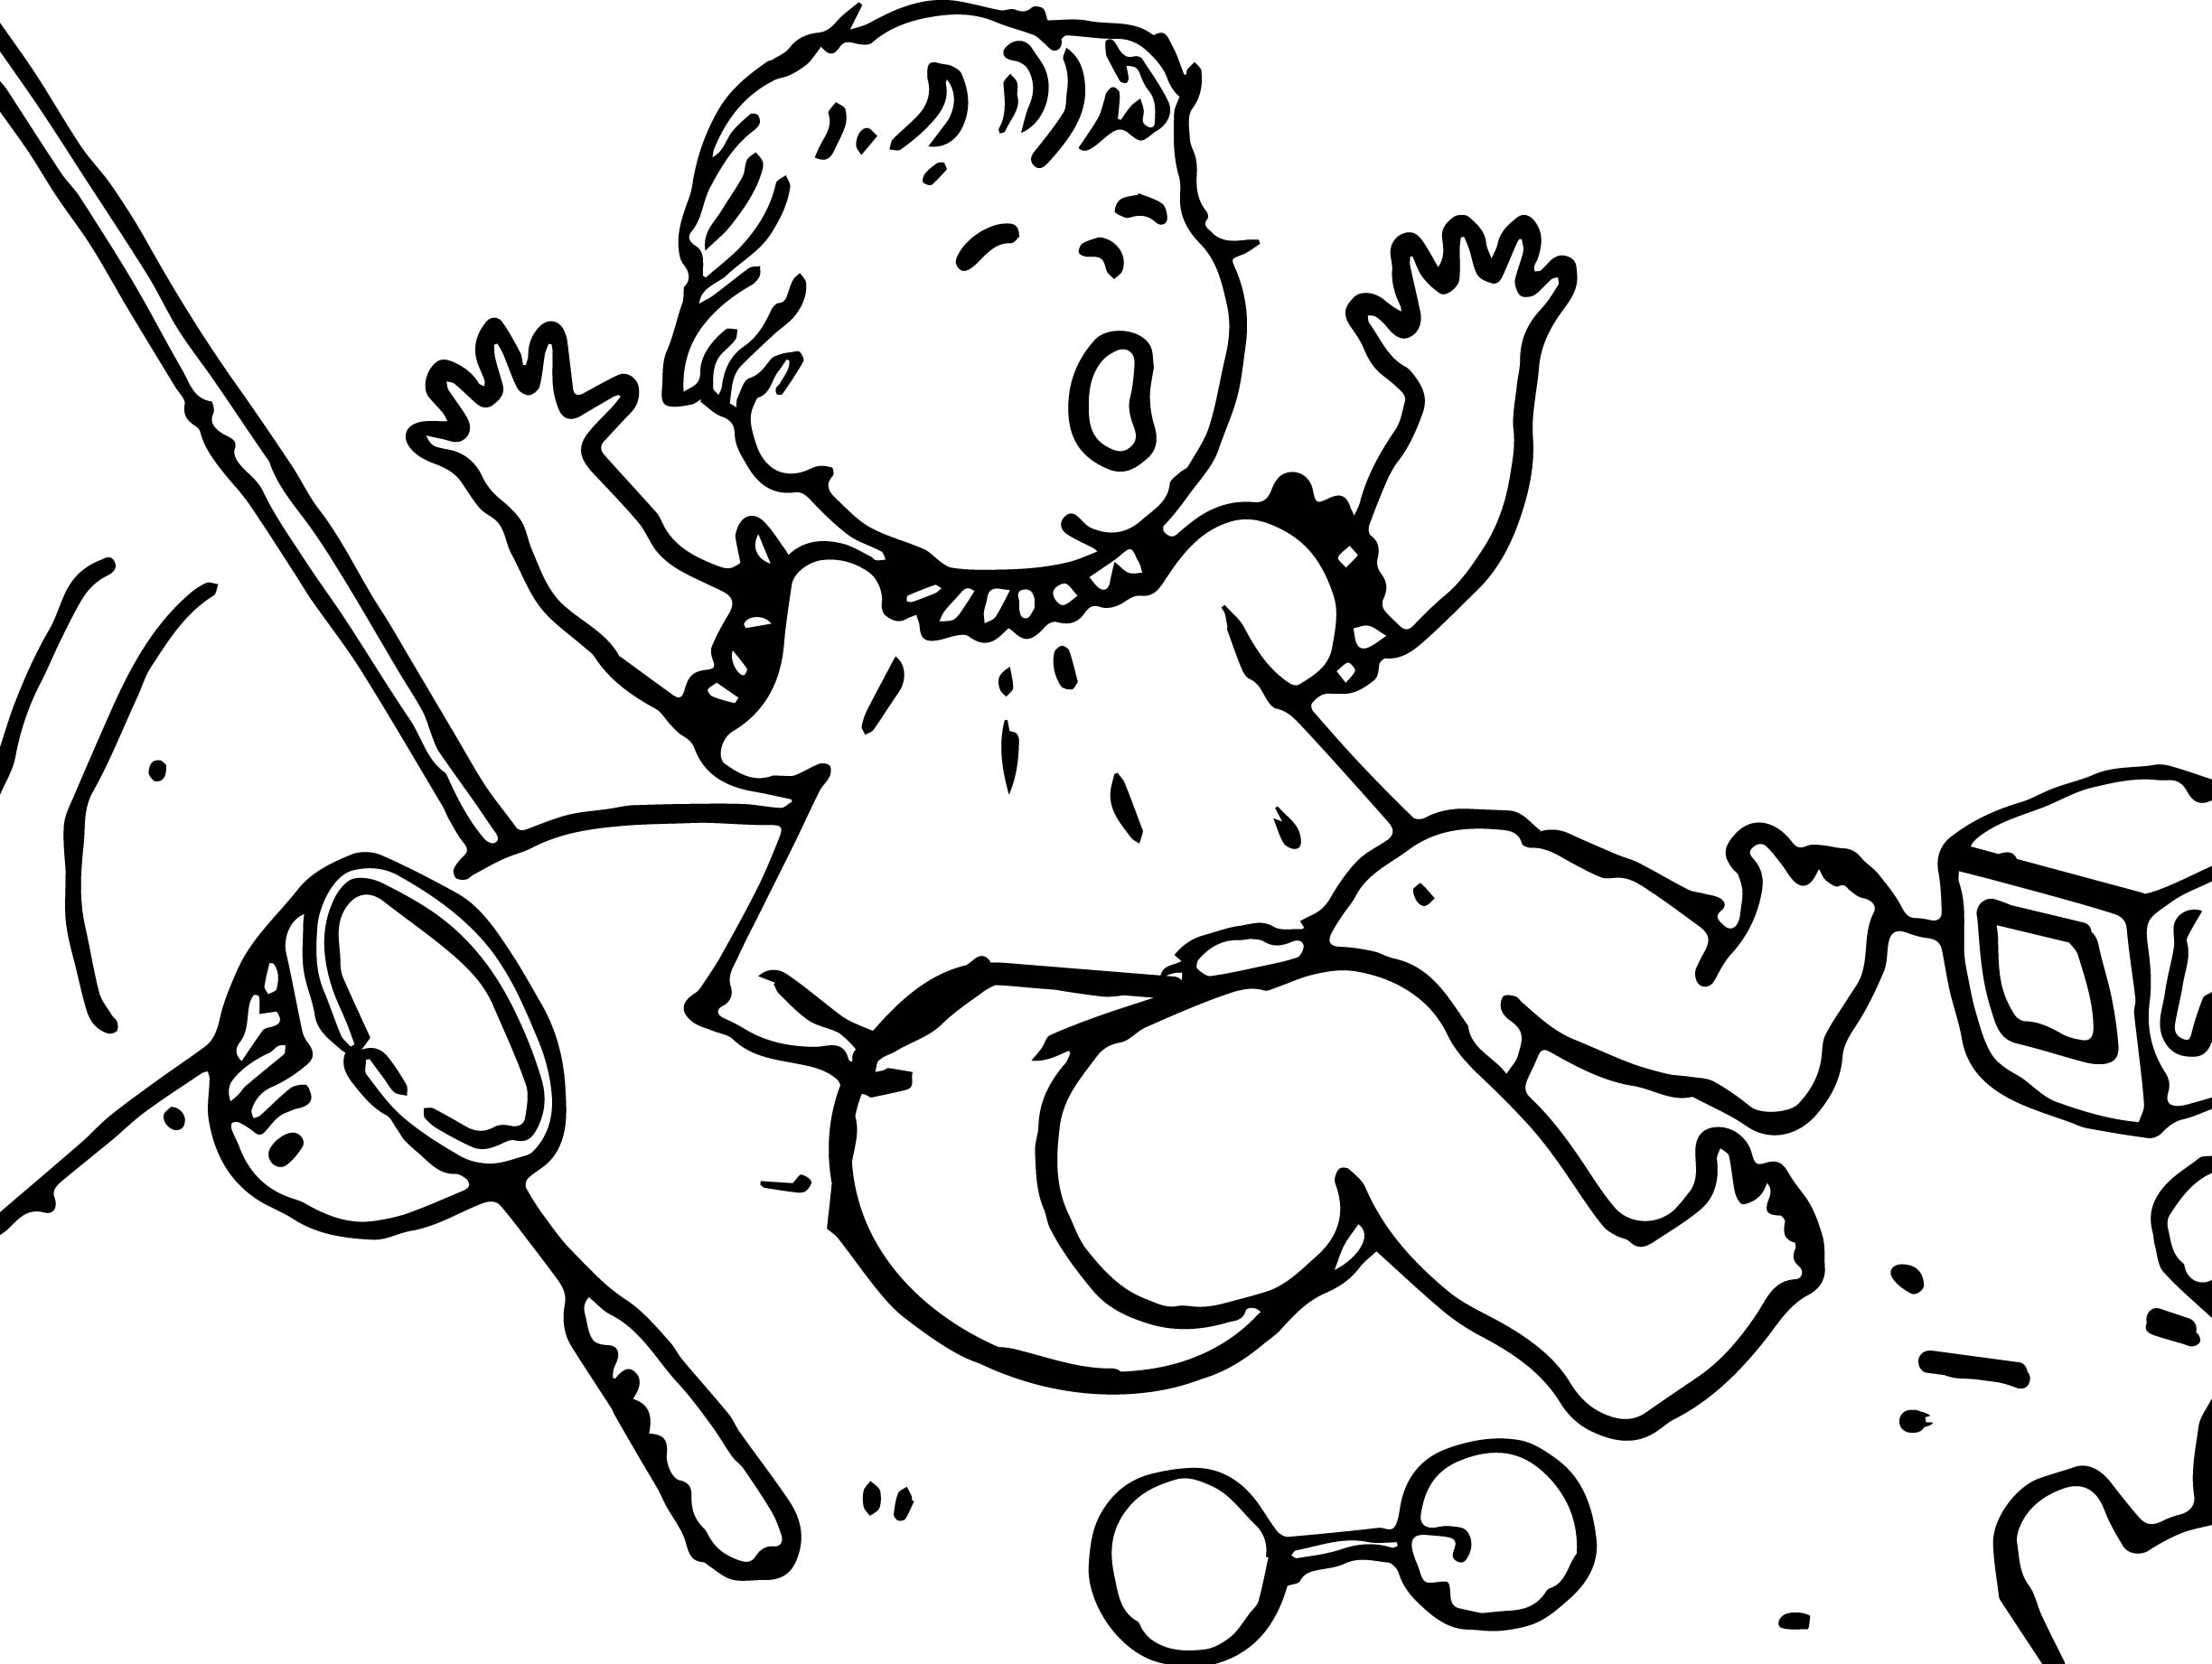 amelia bedelia coloring pages images for adults | Amelia Bedelia Coloring Pages Coloring Pages